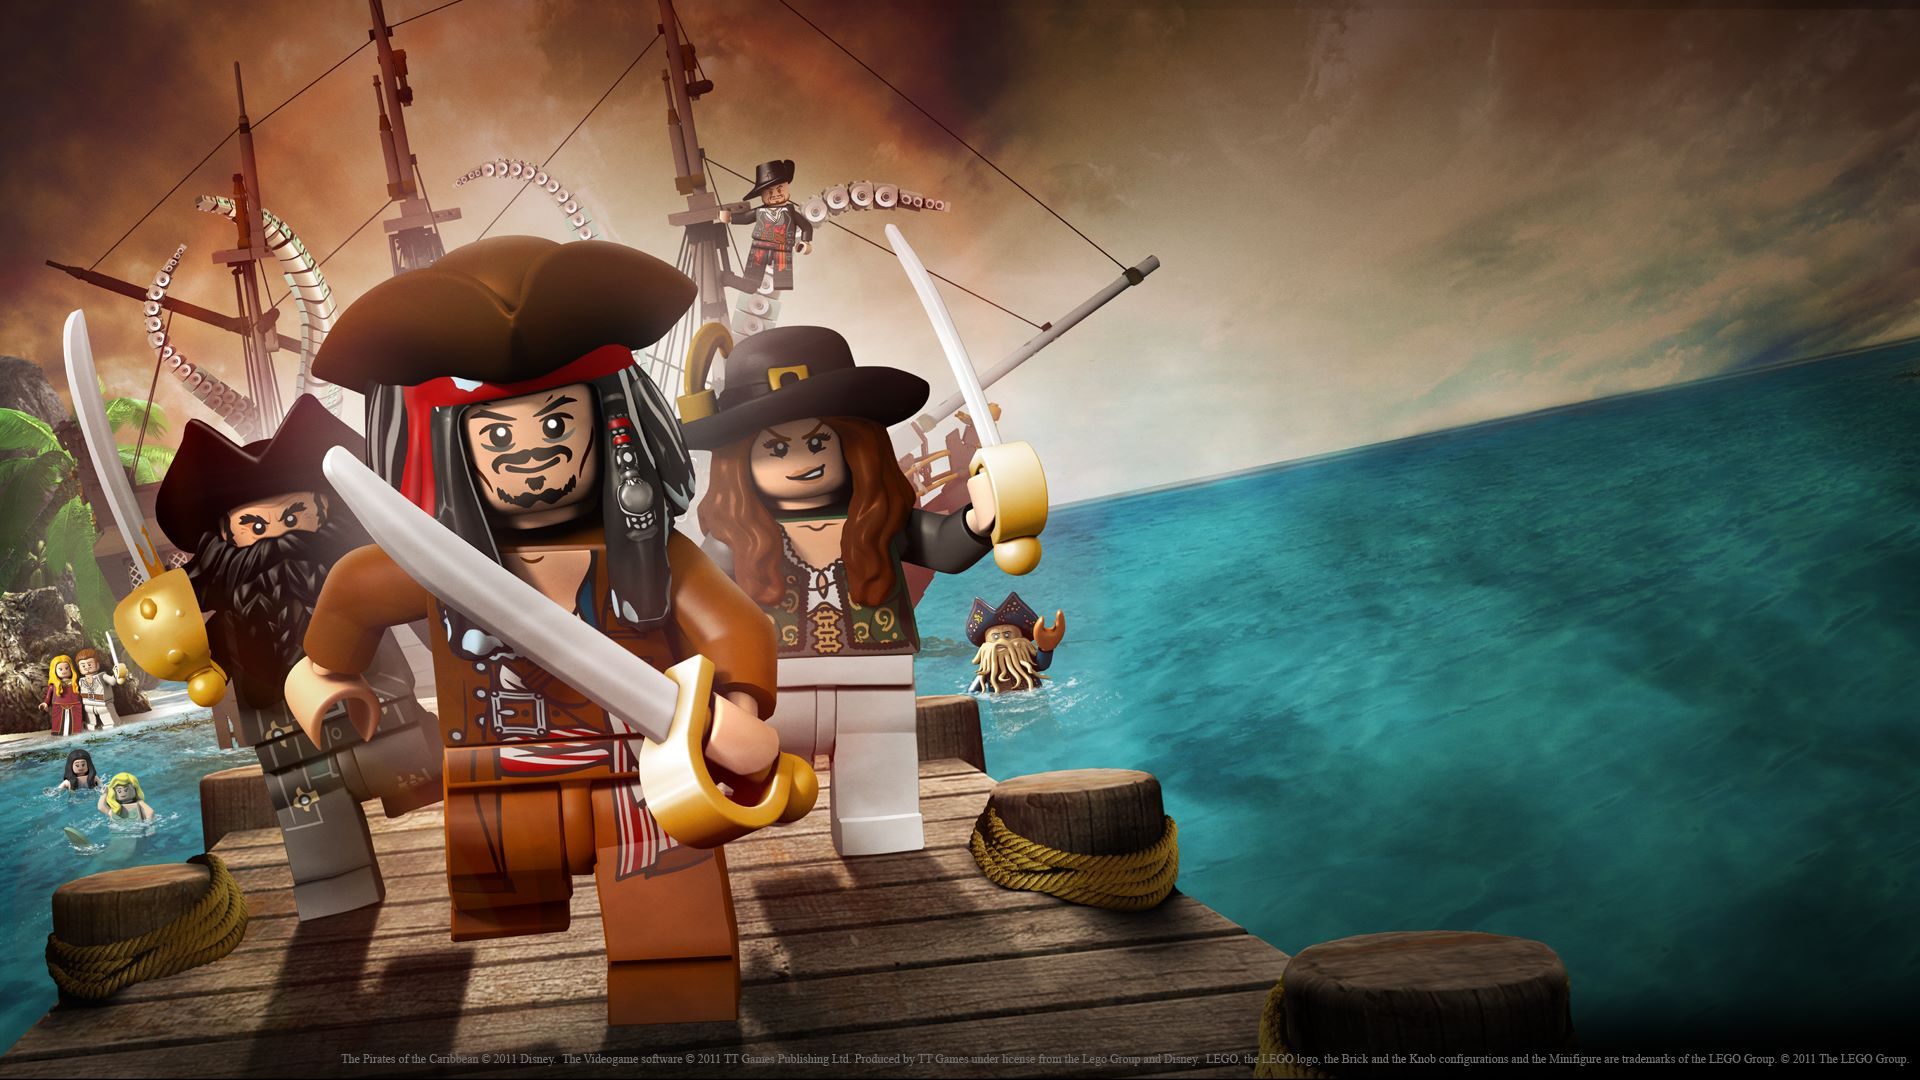 LEGO Pirates des Caraïbes Wallpaper